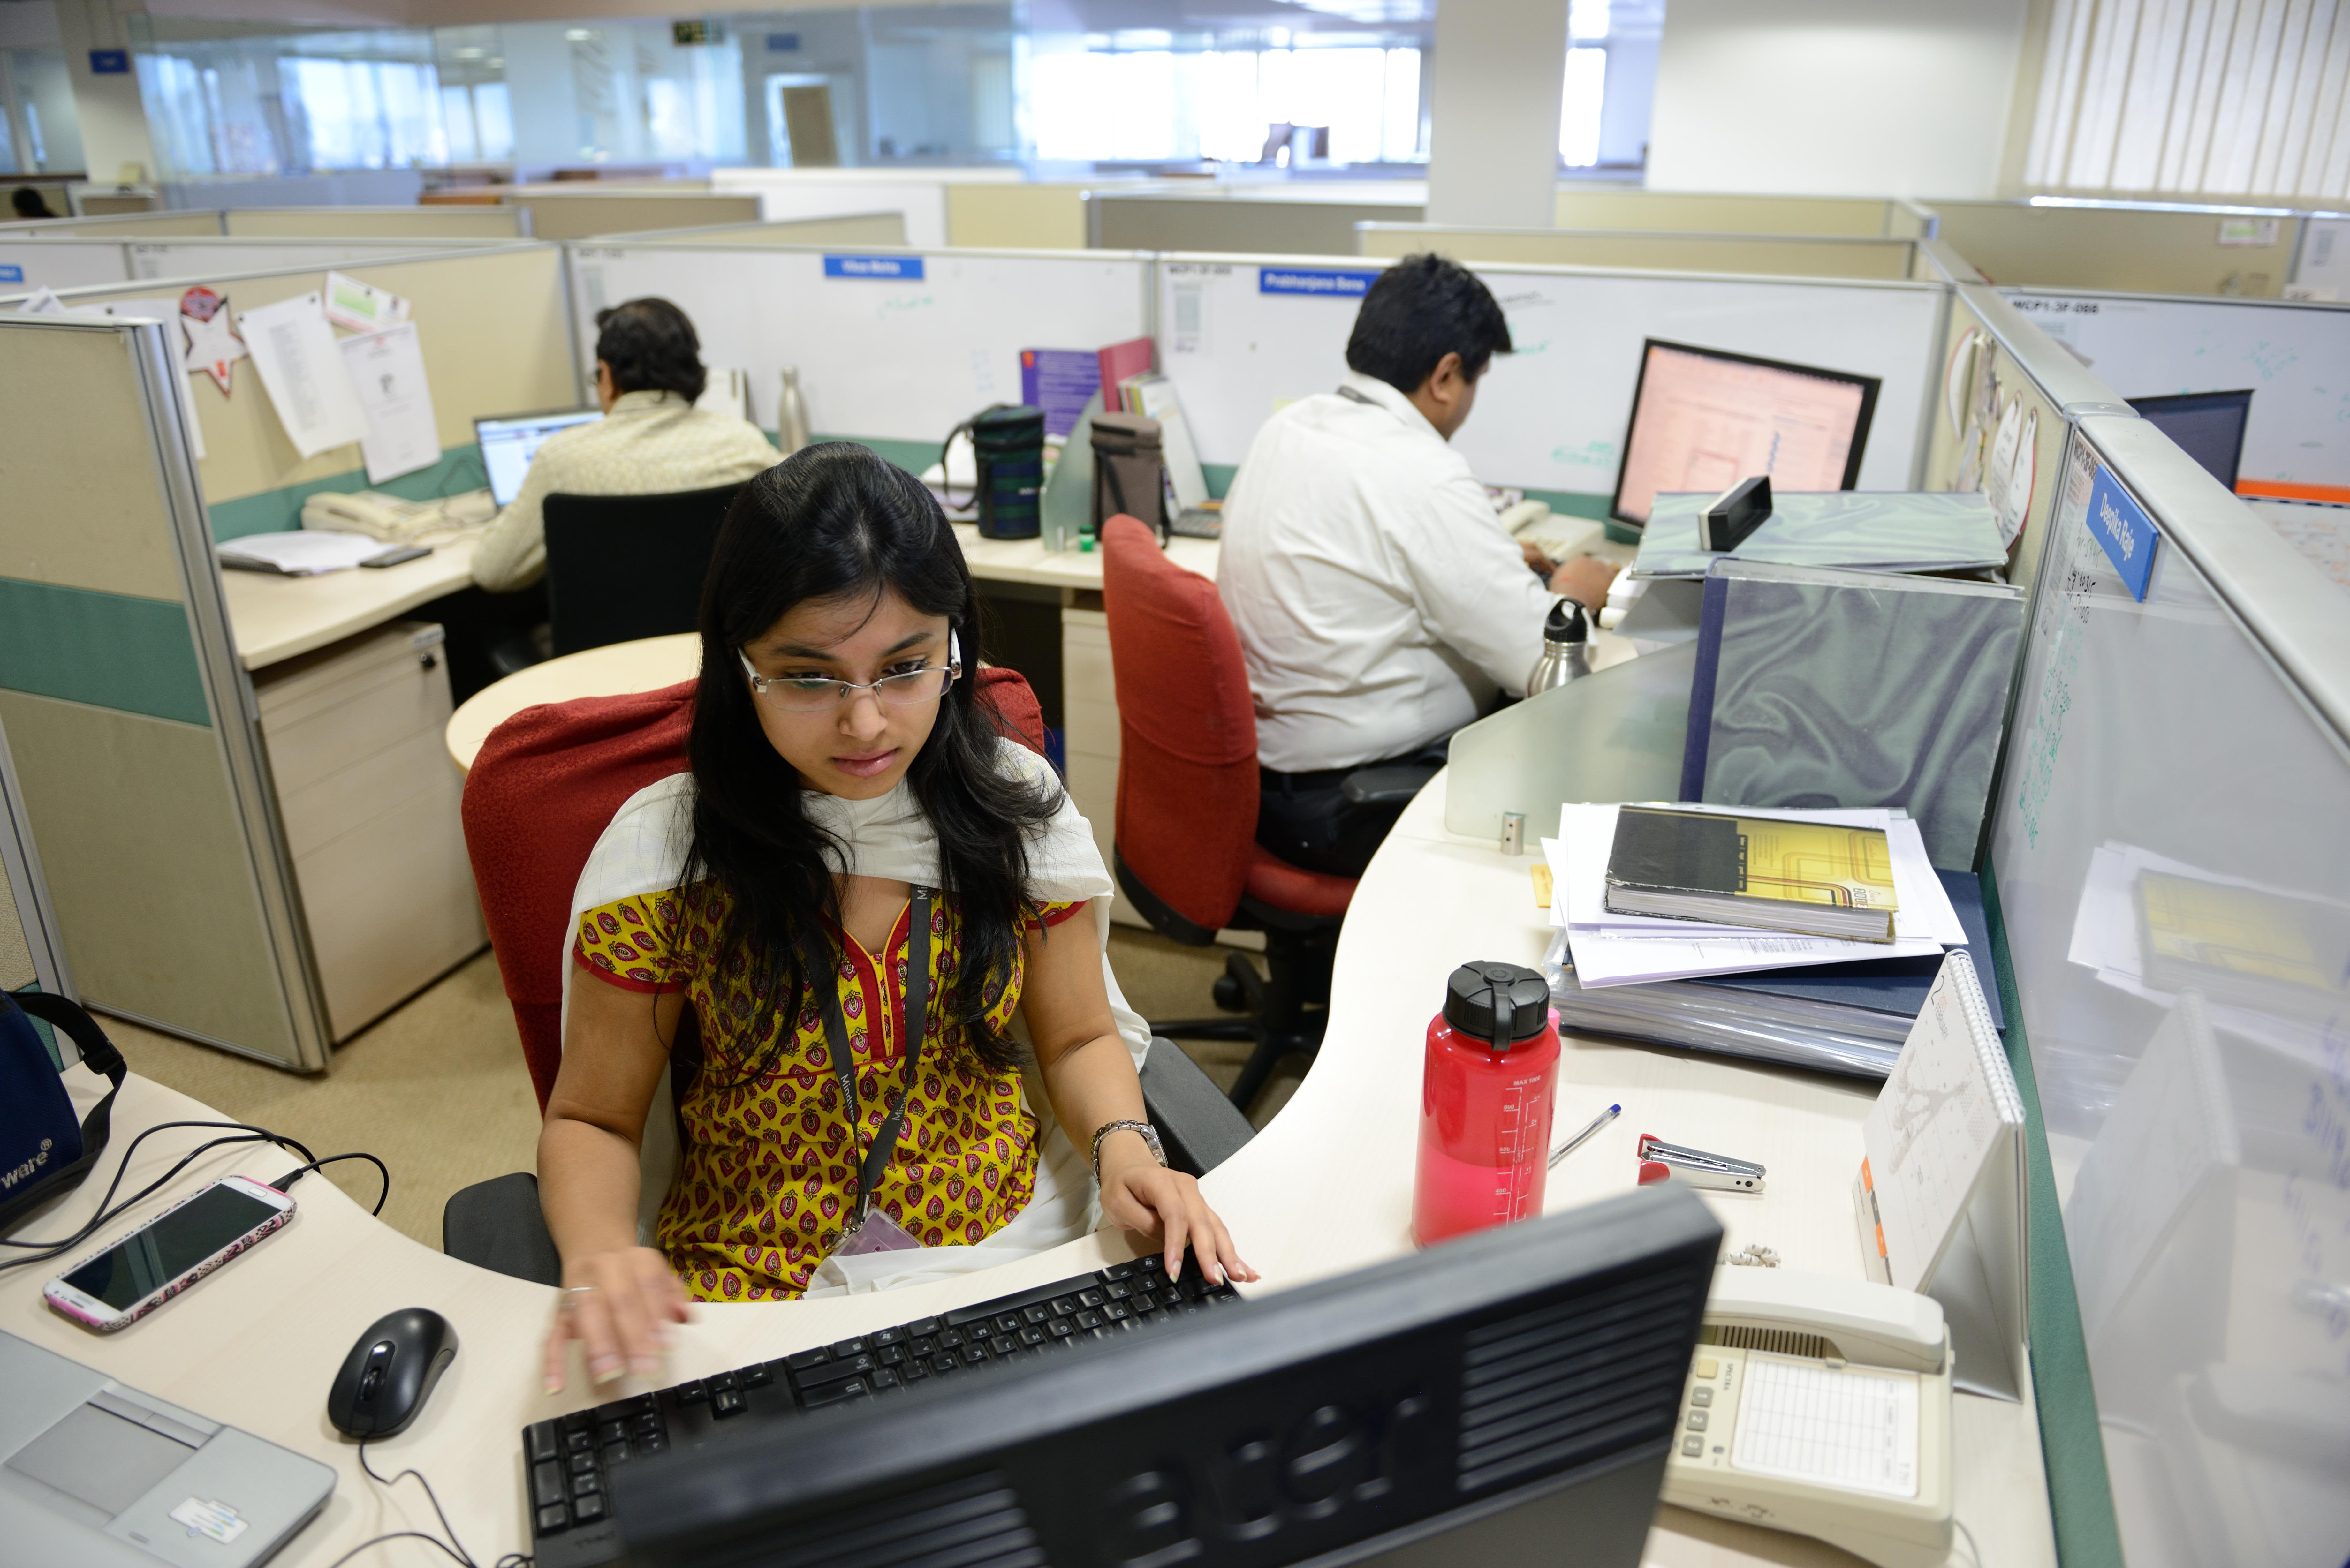 Already under massive stress from the virus, more Indian workers turn to 'gig economy' livelihoods